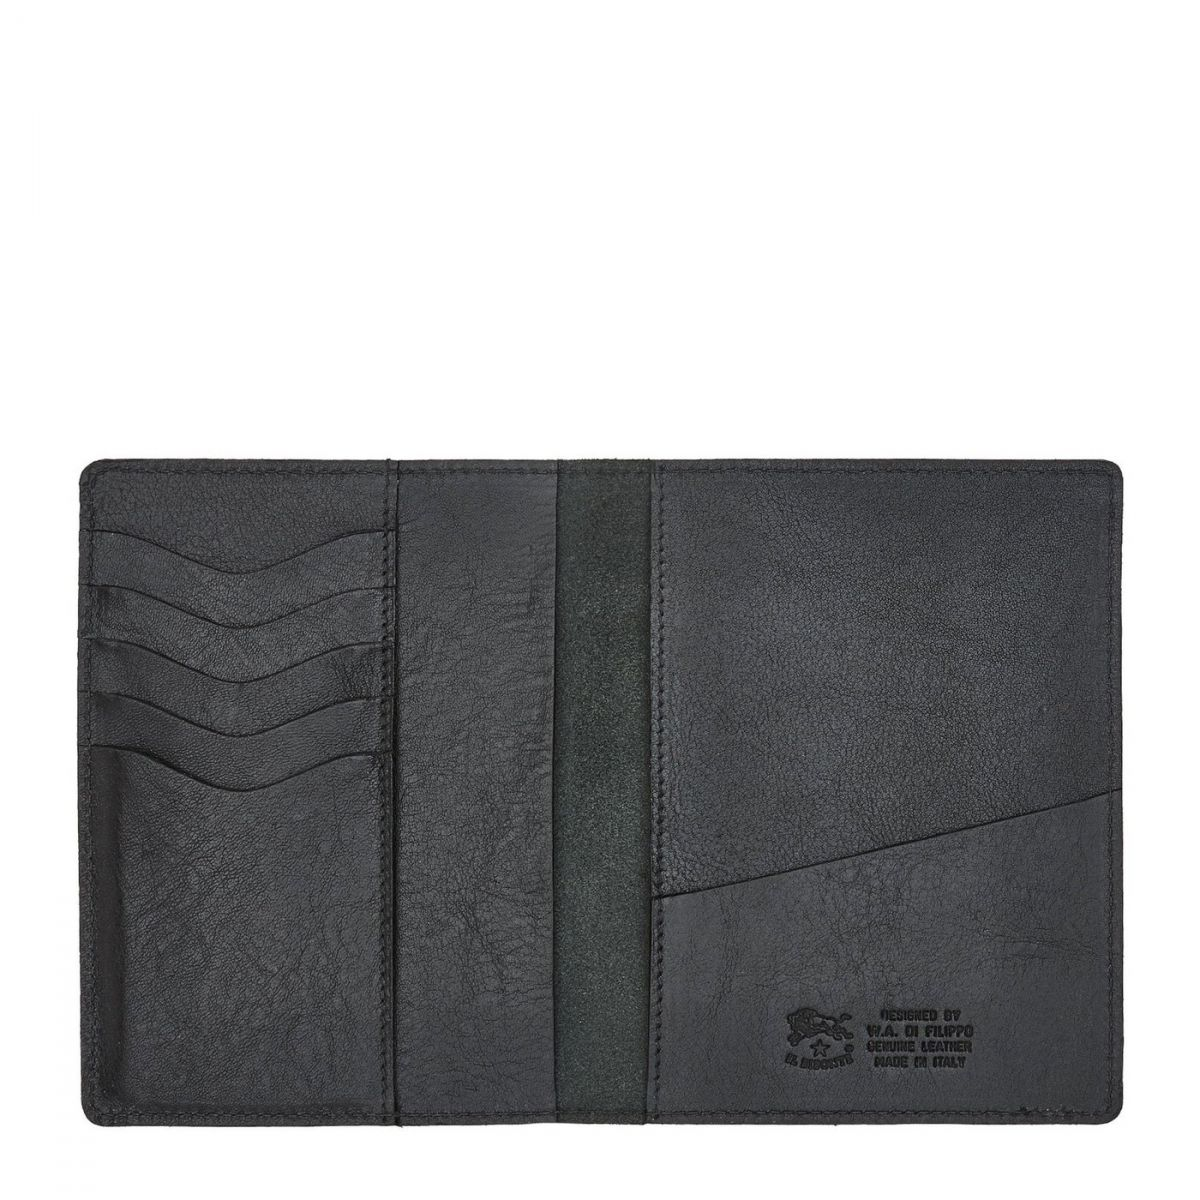 Case  in Cowhide Double Leather SCA036 color Black | Details